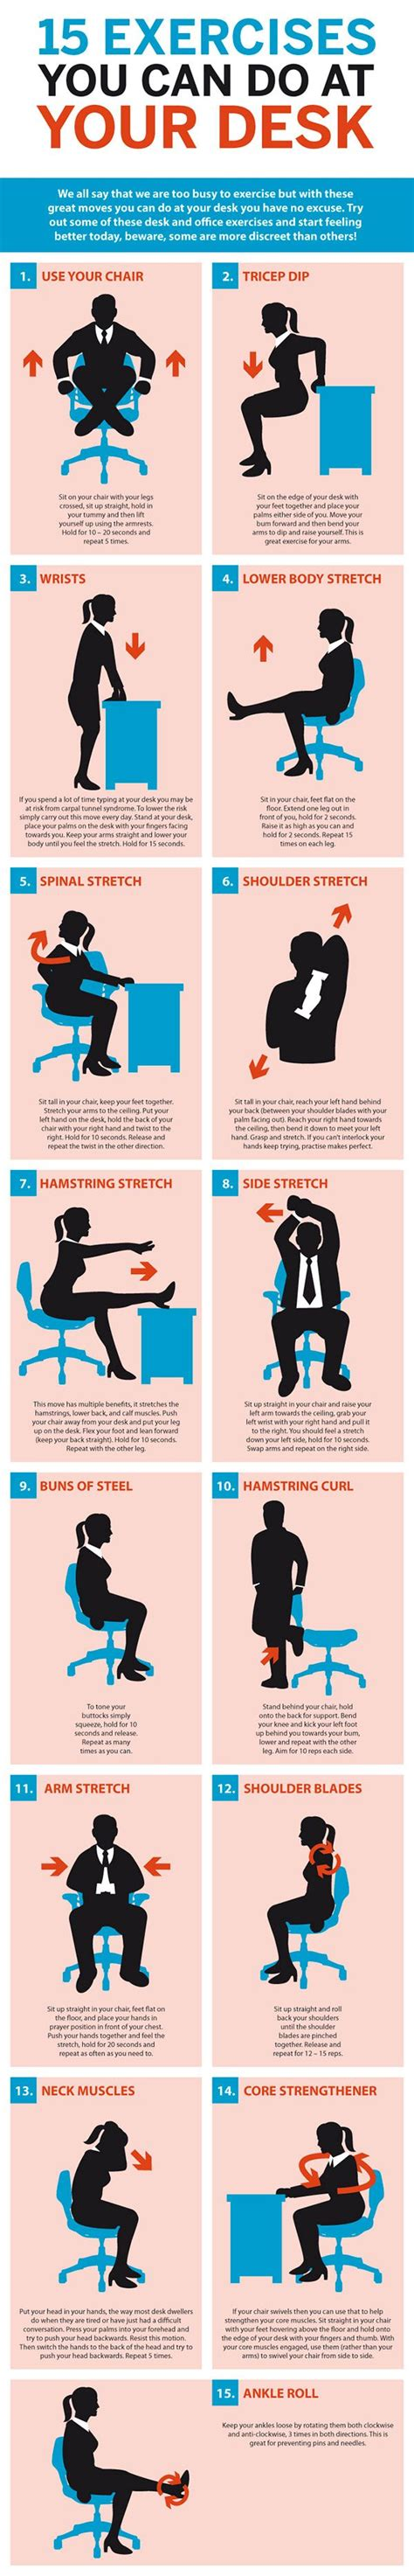 exercises to do at your desk with pictures 1000 images about exercises at work on pinterest